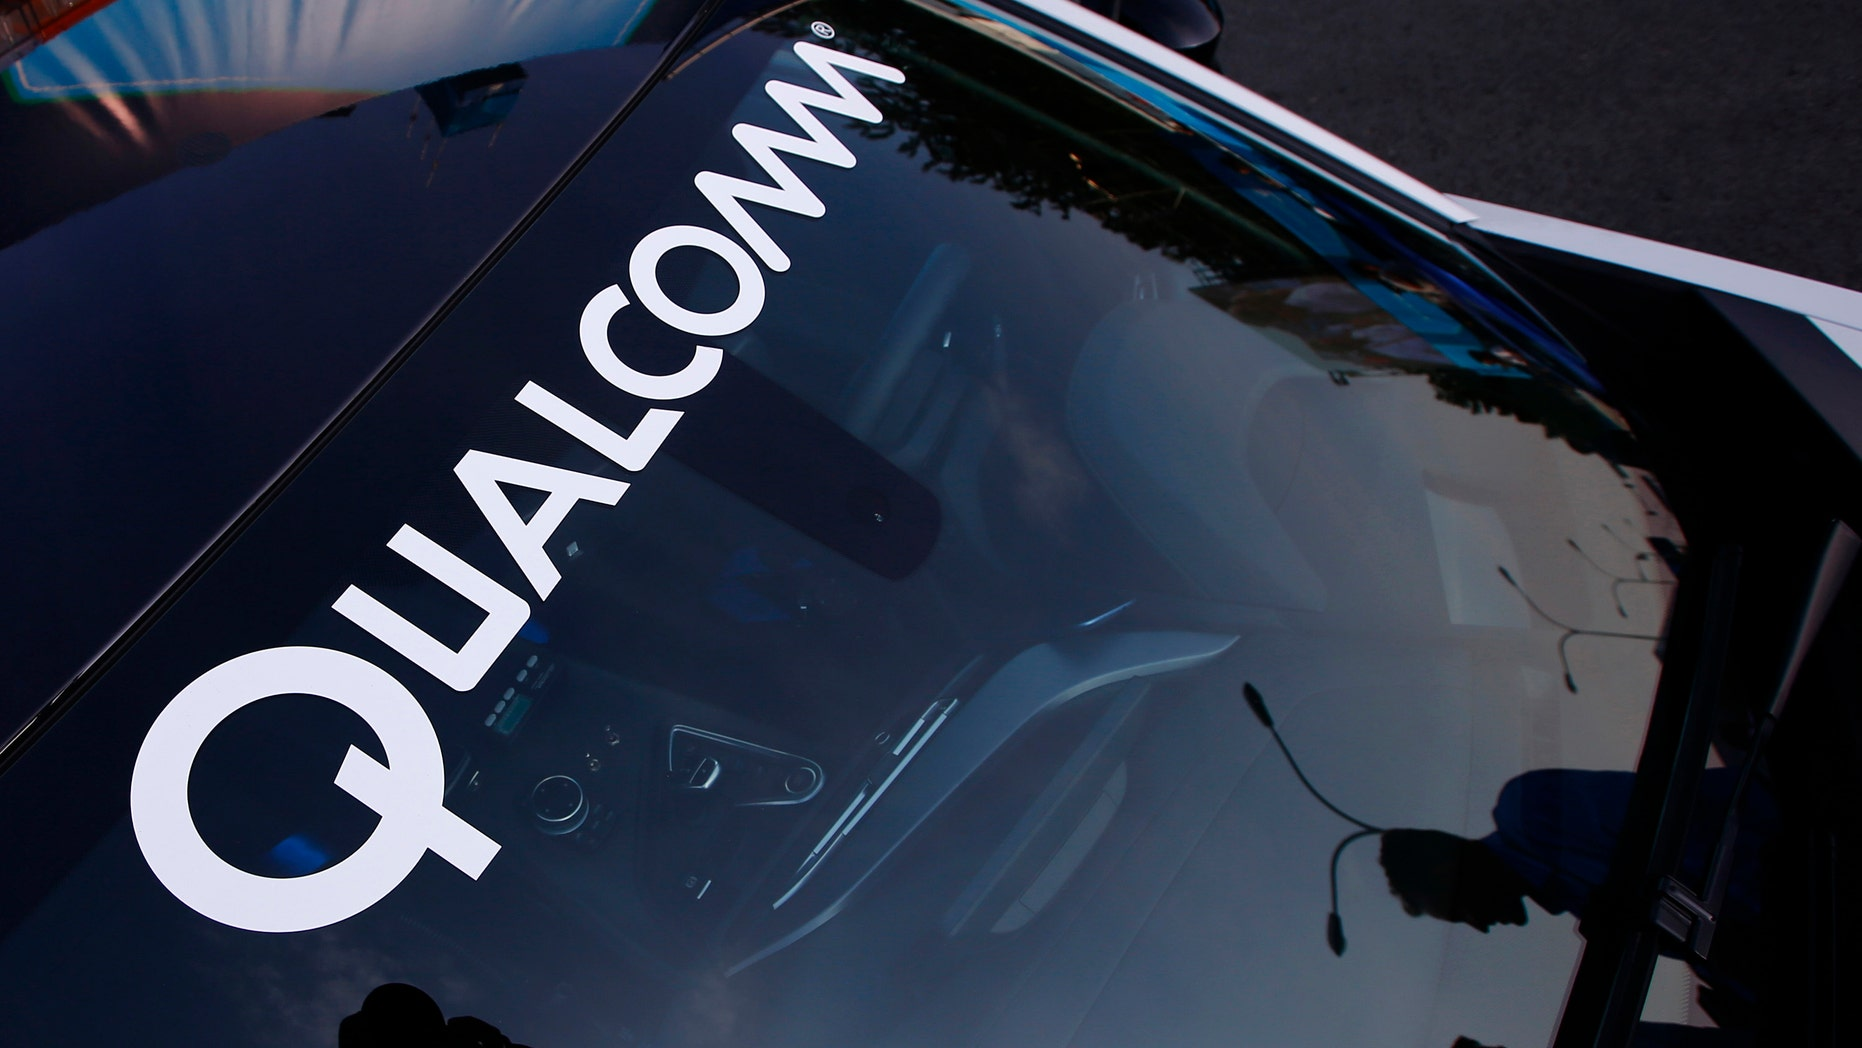 """A logo of U.S. chipmaker Qualcomm is seen on the windshield of a car in Beijing September 13, 2014. China's National Development and Reform Commission (NDRC) has investigated dozens of foreign firms over alleged """"anti-competitive behaviour"""" - from auto parts makers and milk powder producers to drugs firms and tech companies, including Qualcomm Inc,  which faces a potential record fine of more than $1 billion. From interviews with more than two dozen attorneys, executives, and experts, who have been drawn into investigations with the NDRC's price supervision and anti-monopoly bureau, a picture emerges of a culture of intimidation. The agency's aggressive tactics coincide with an increasingly sobering business climate for foreign firms in China. Fears over the ruling Communist Party's support for domestic firms has prompted some to declare the end of a golden age for foreign business in the world's second-largest economy.  To match Insight CHINA-ANTITRUST/NDRC     Picture taken September 13, 2014. REUTERS/Petar Kujundzic (CHINA - Tags: POLITICS BUSINESS LOGO CRIME LAW) - RTR46CHJ"""